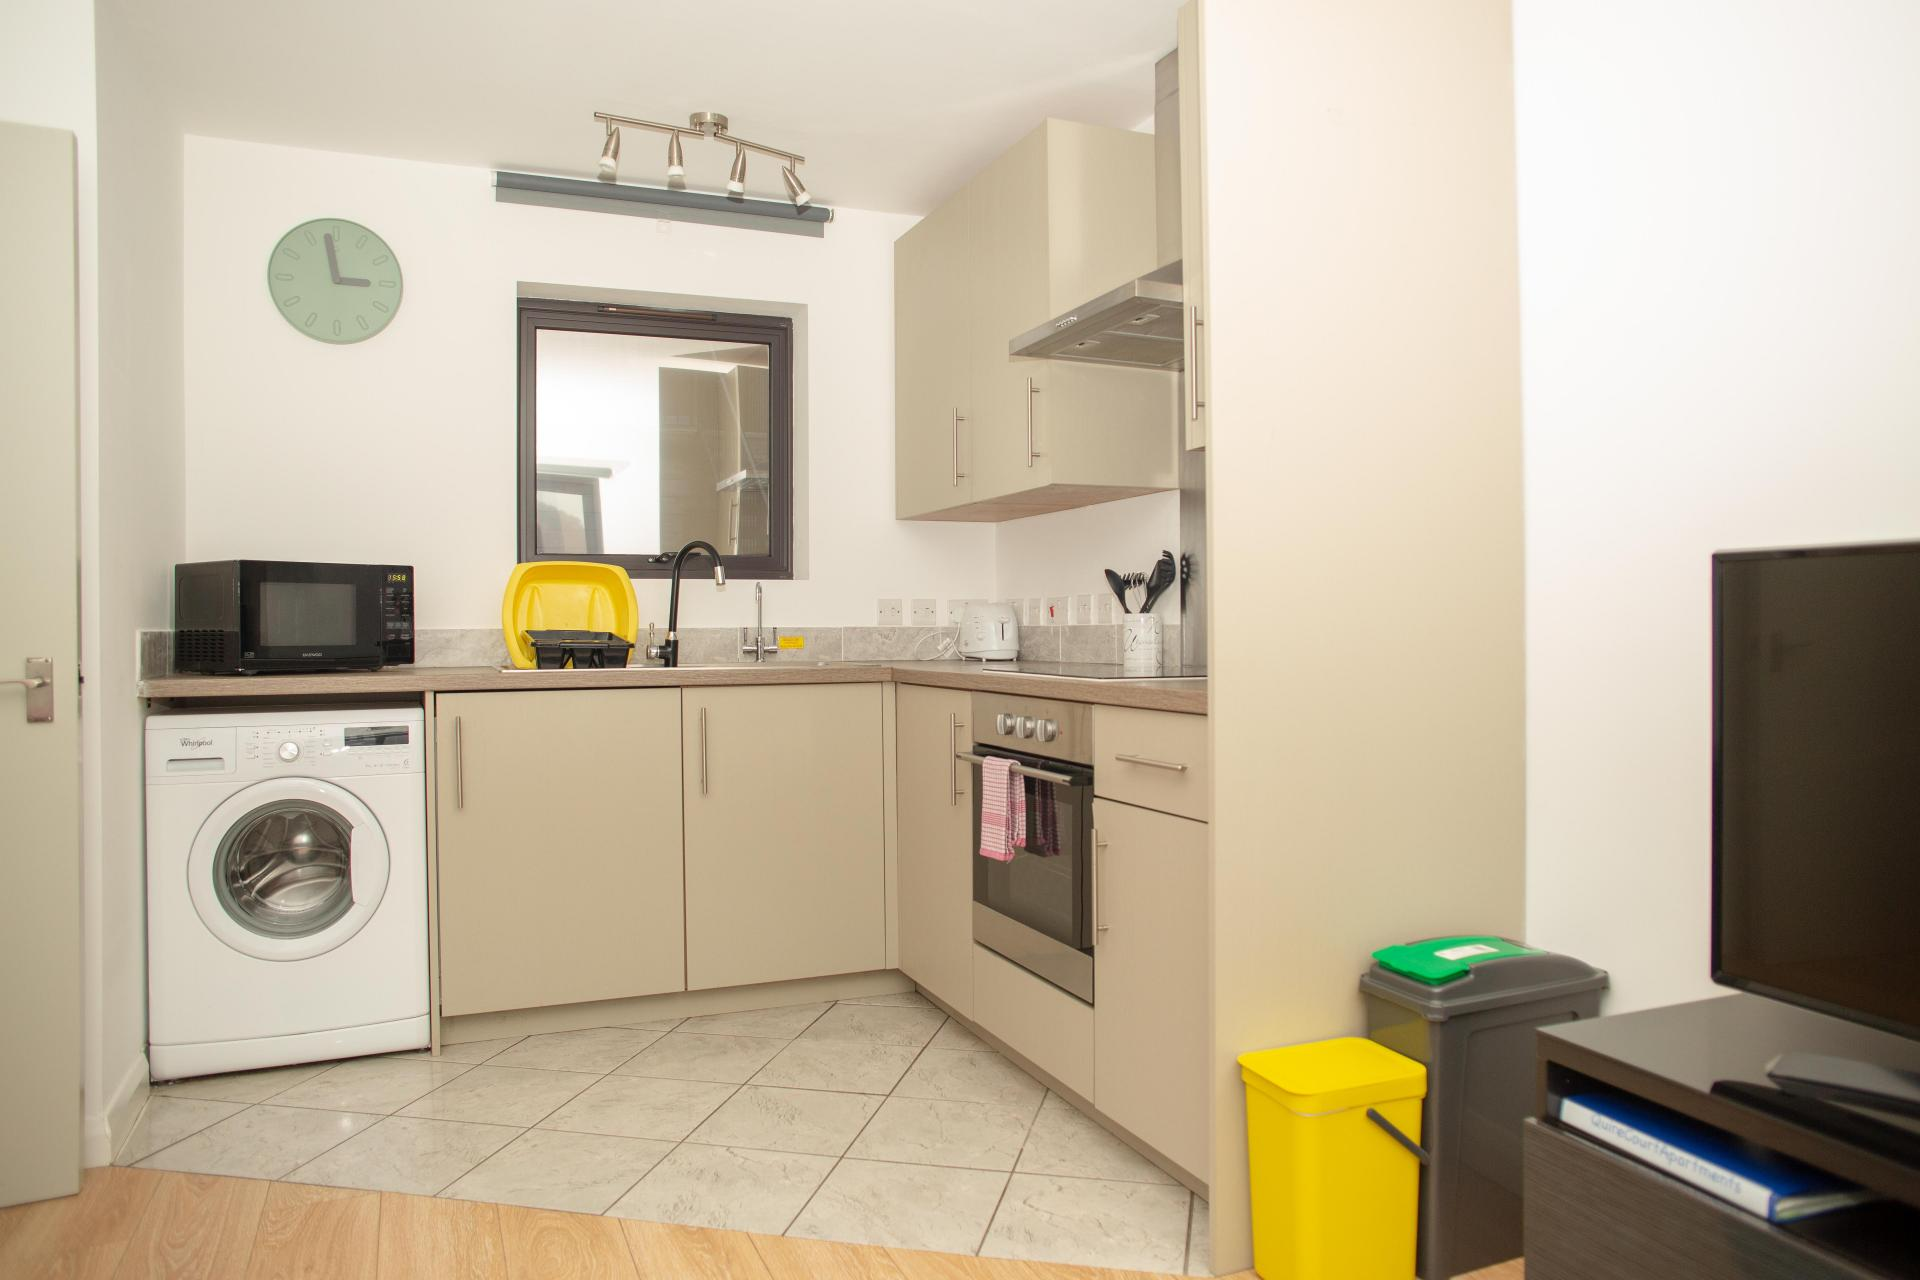 Laundry at Quire Court Apartments, Centre, Gloucester - Citybase Apartments